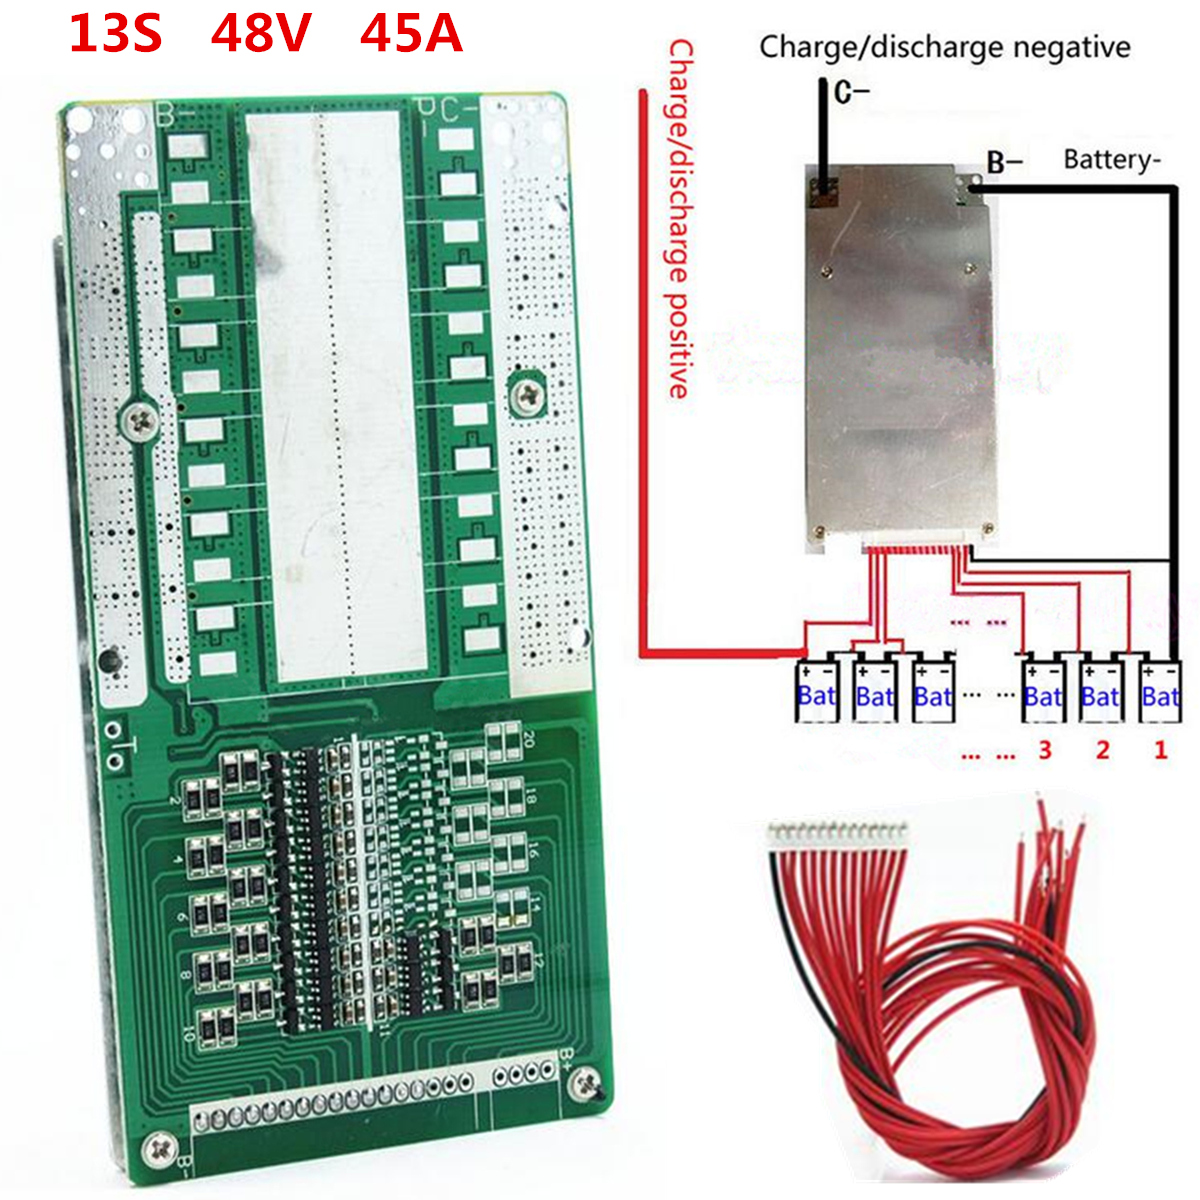 48V 13S 45A Li-ion Lipolymer Battery Protection Board Module BMS PCB With Balance48V 13S 45A Li-ion Lipolymer Battery Protection Board Module BMS PCB With Balance